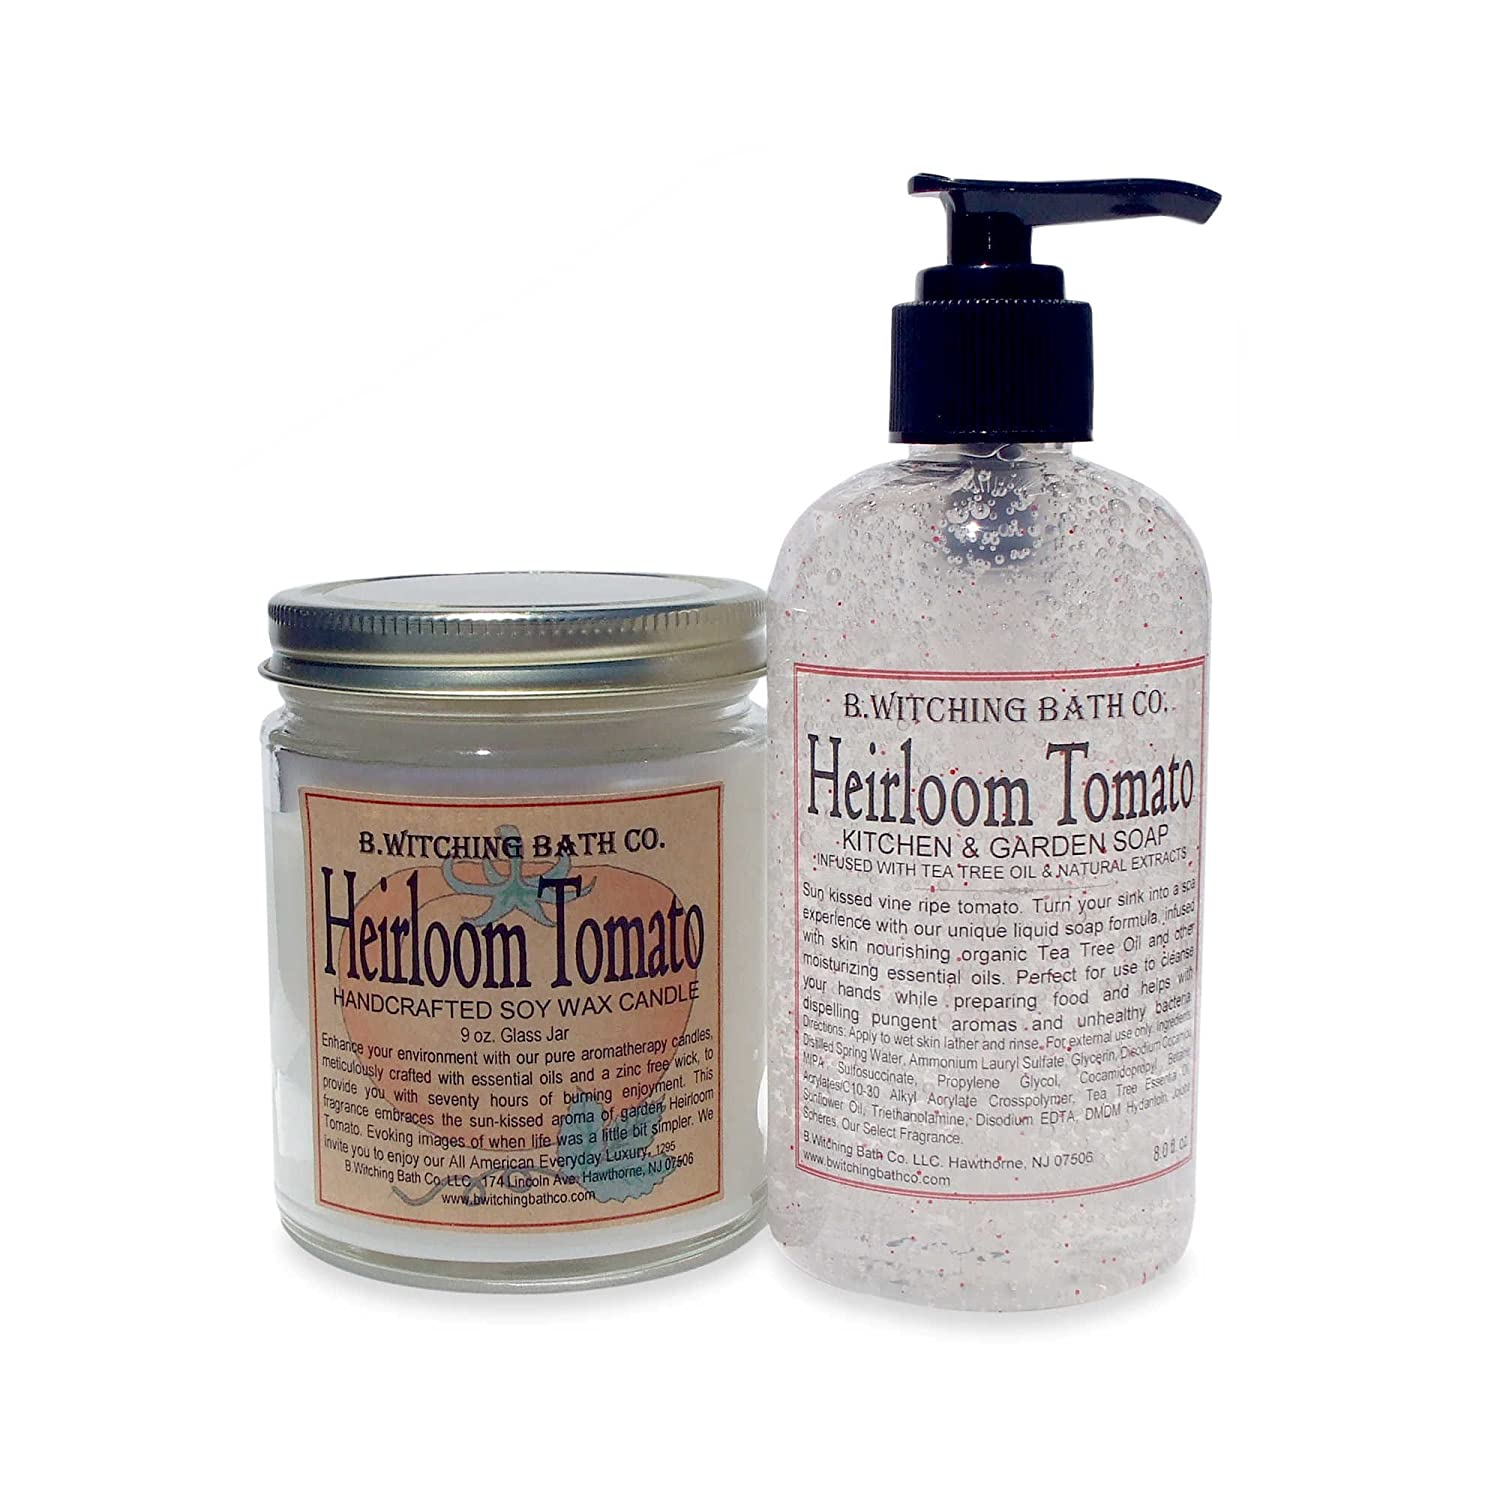 B. Witching Bath Co. Heirloom Tomato Soap and Candle Gift Set